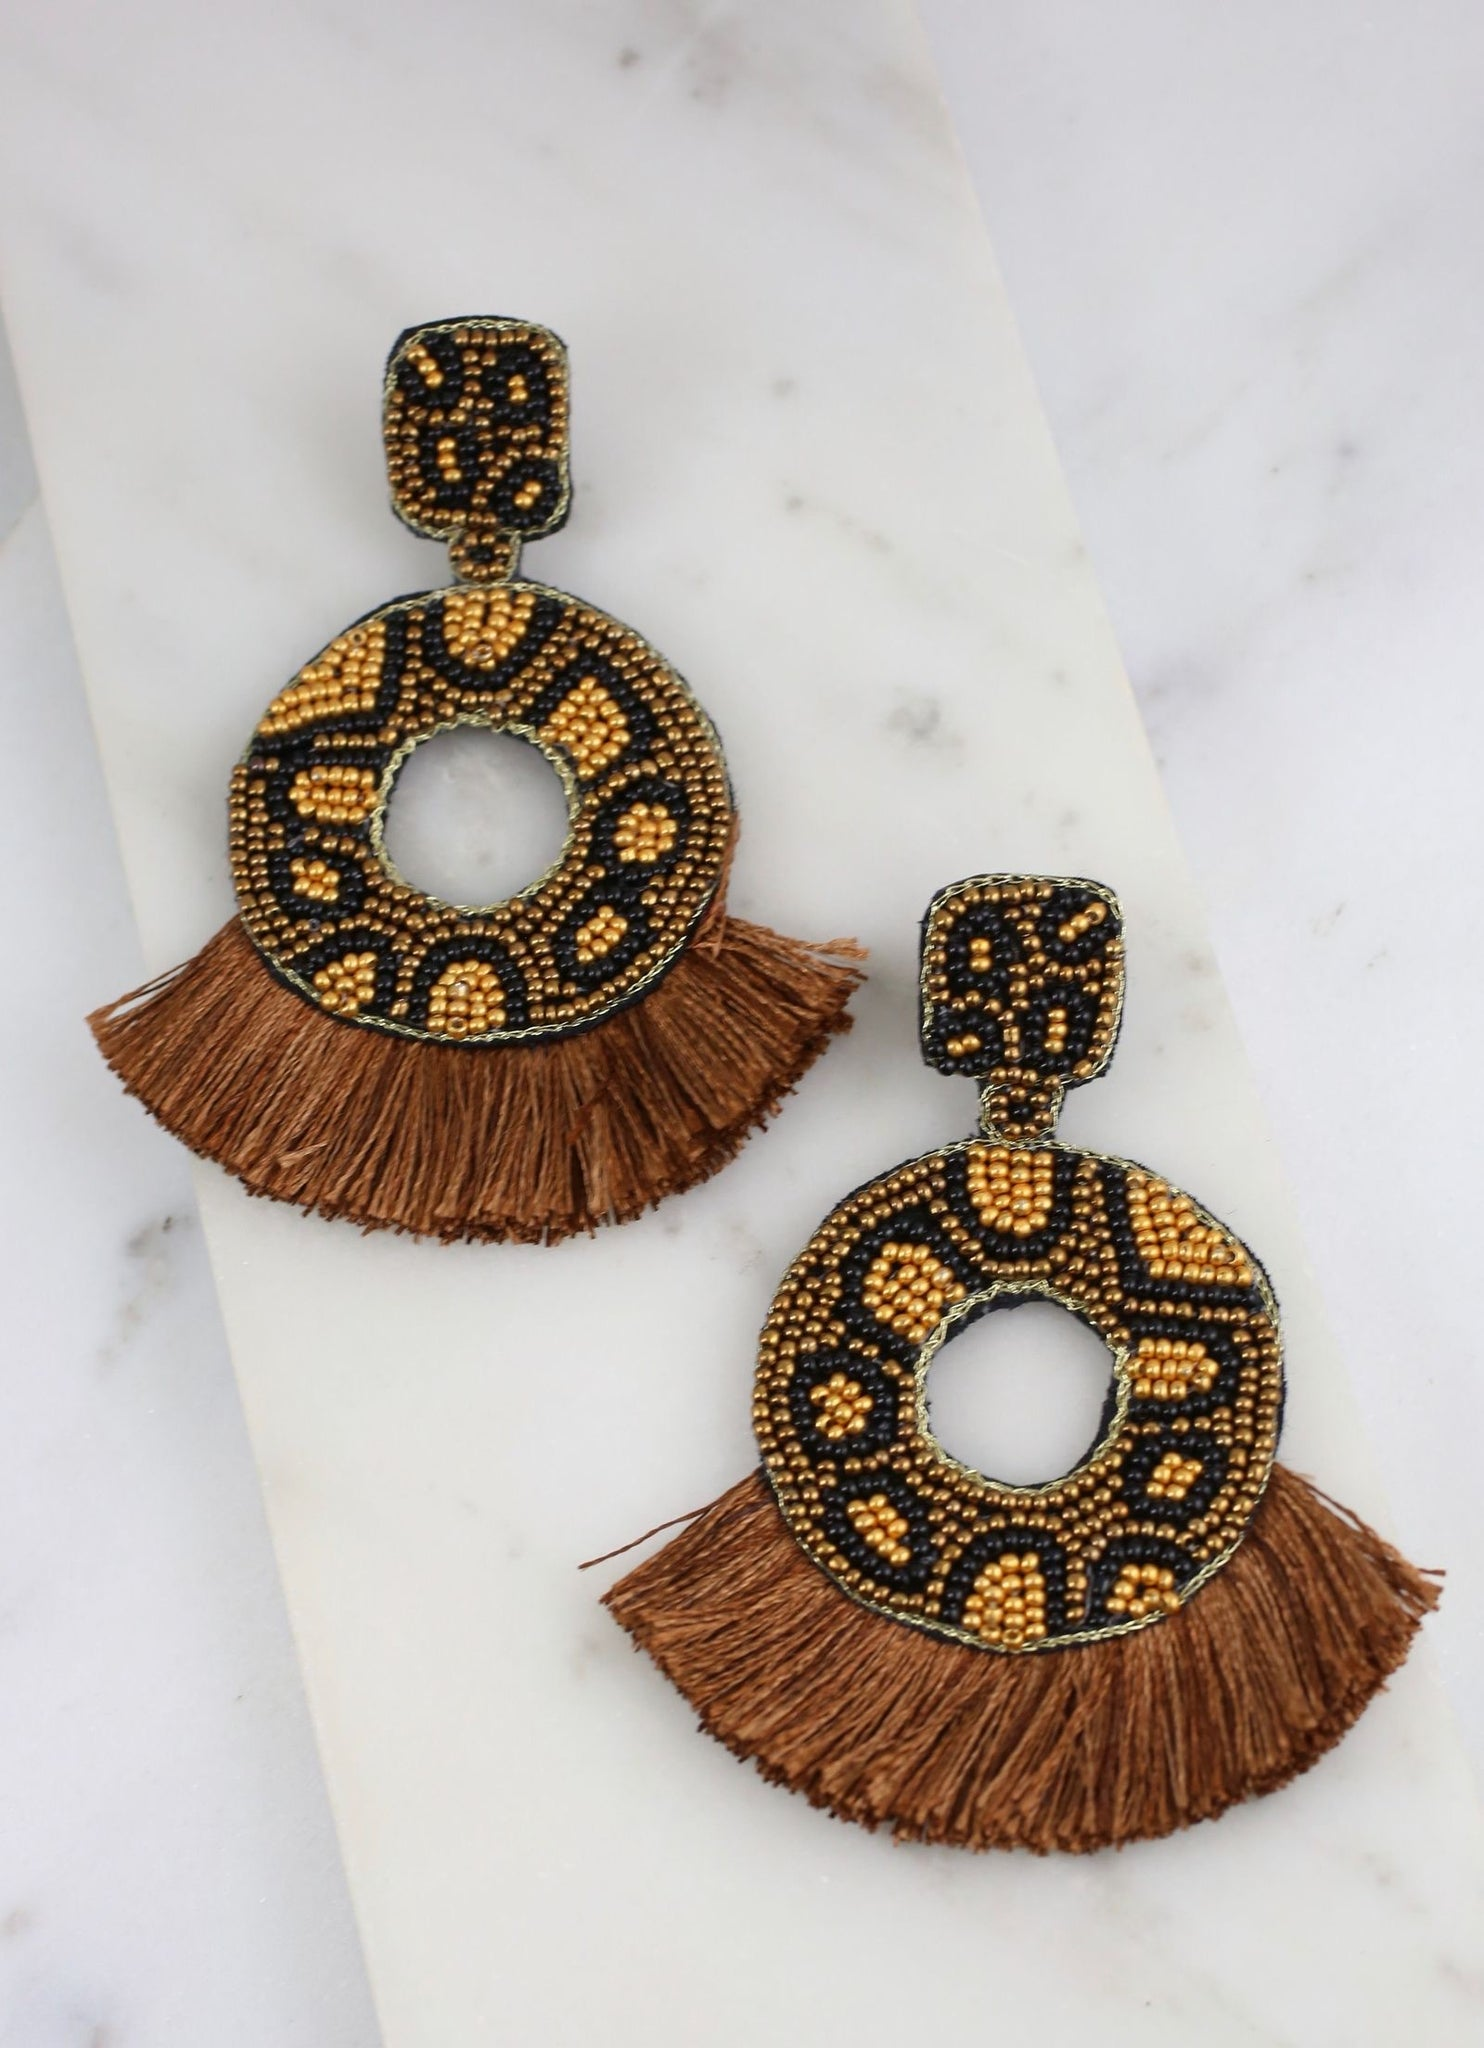 Naylor Leopard Bead Earrings with Fringe